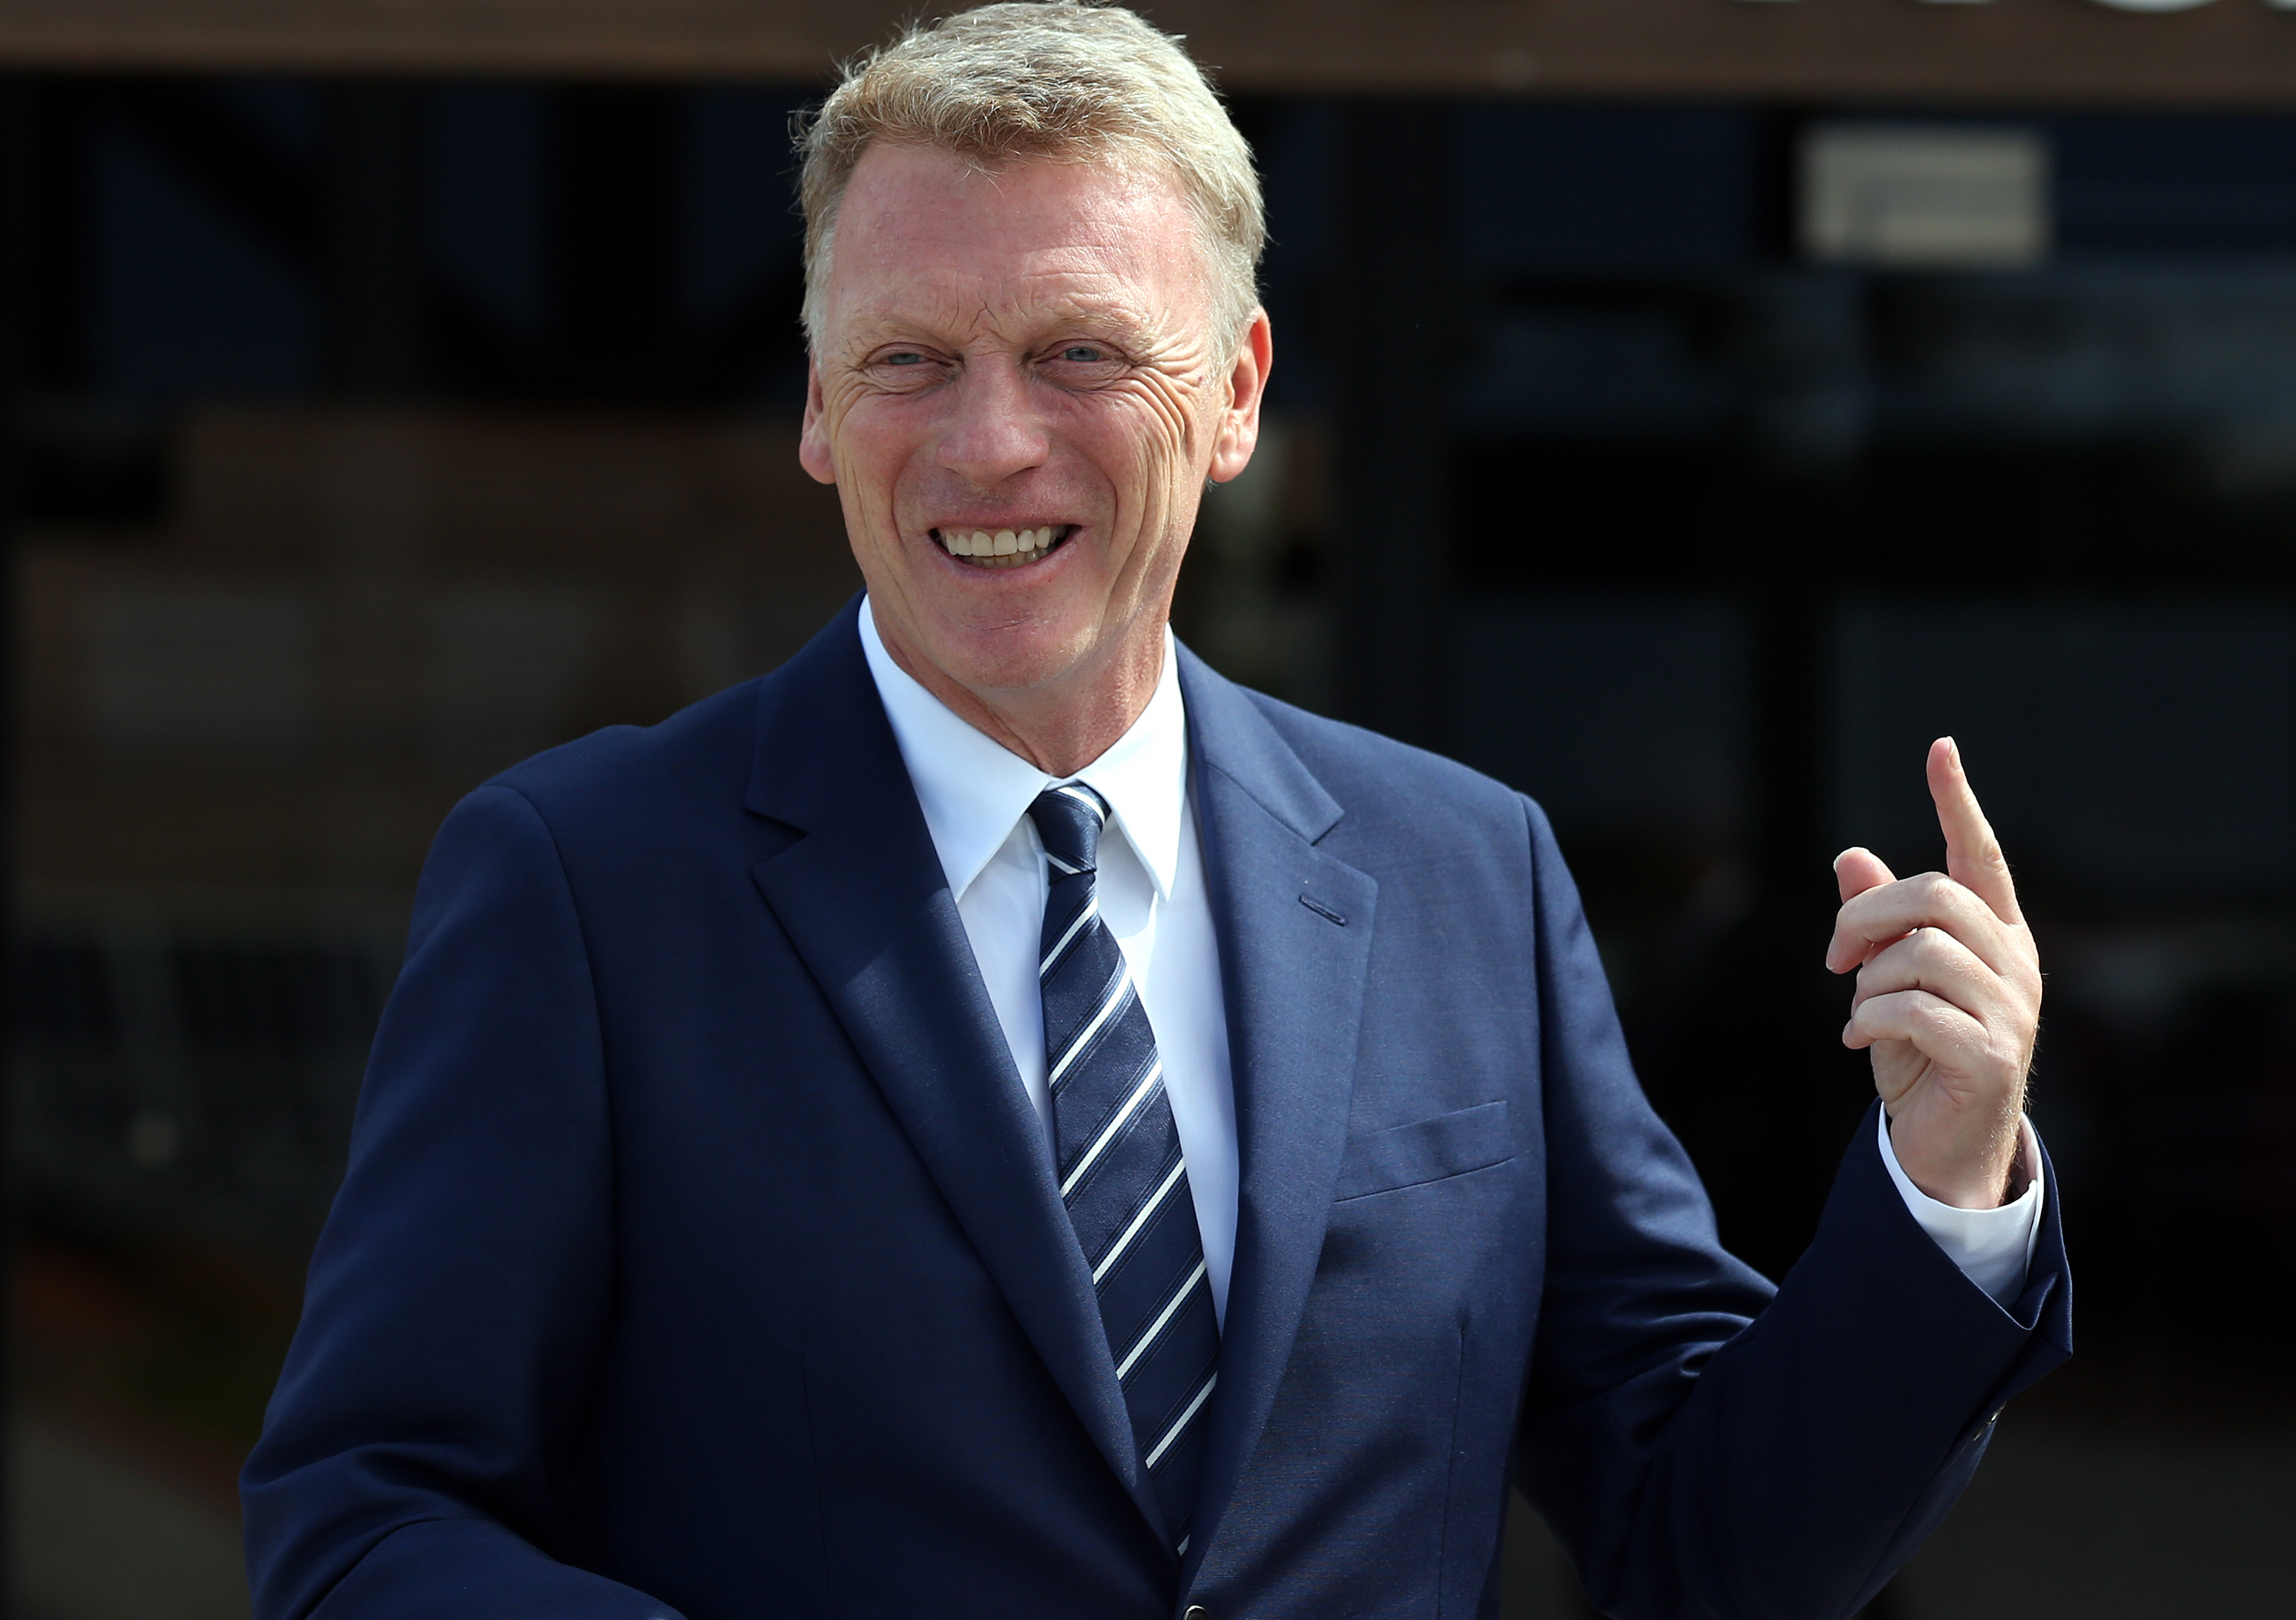 Sunderland manager David Moyes confirms interest in Manchester United players